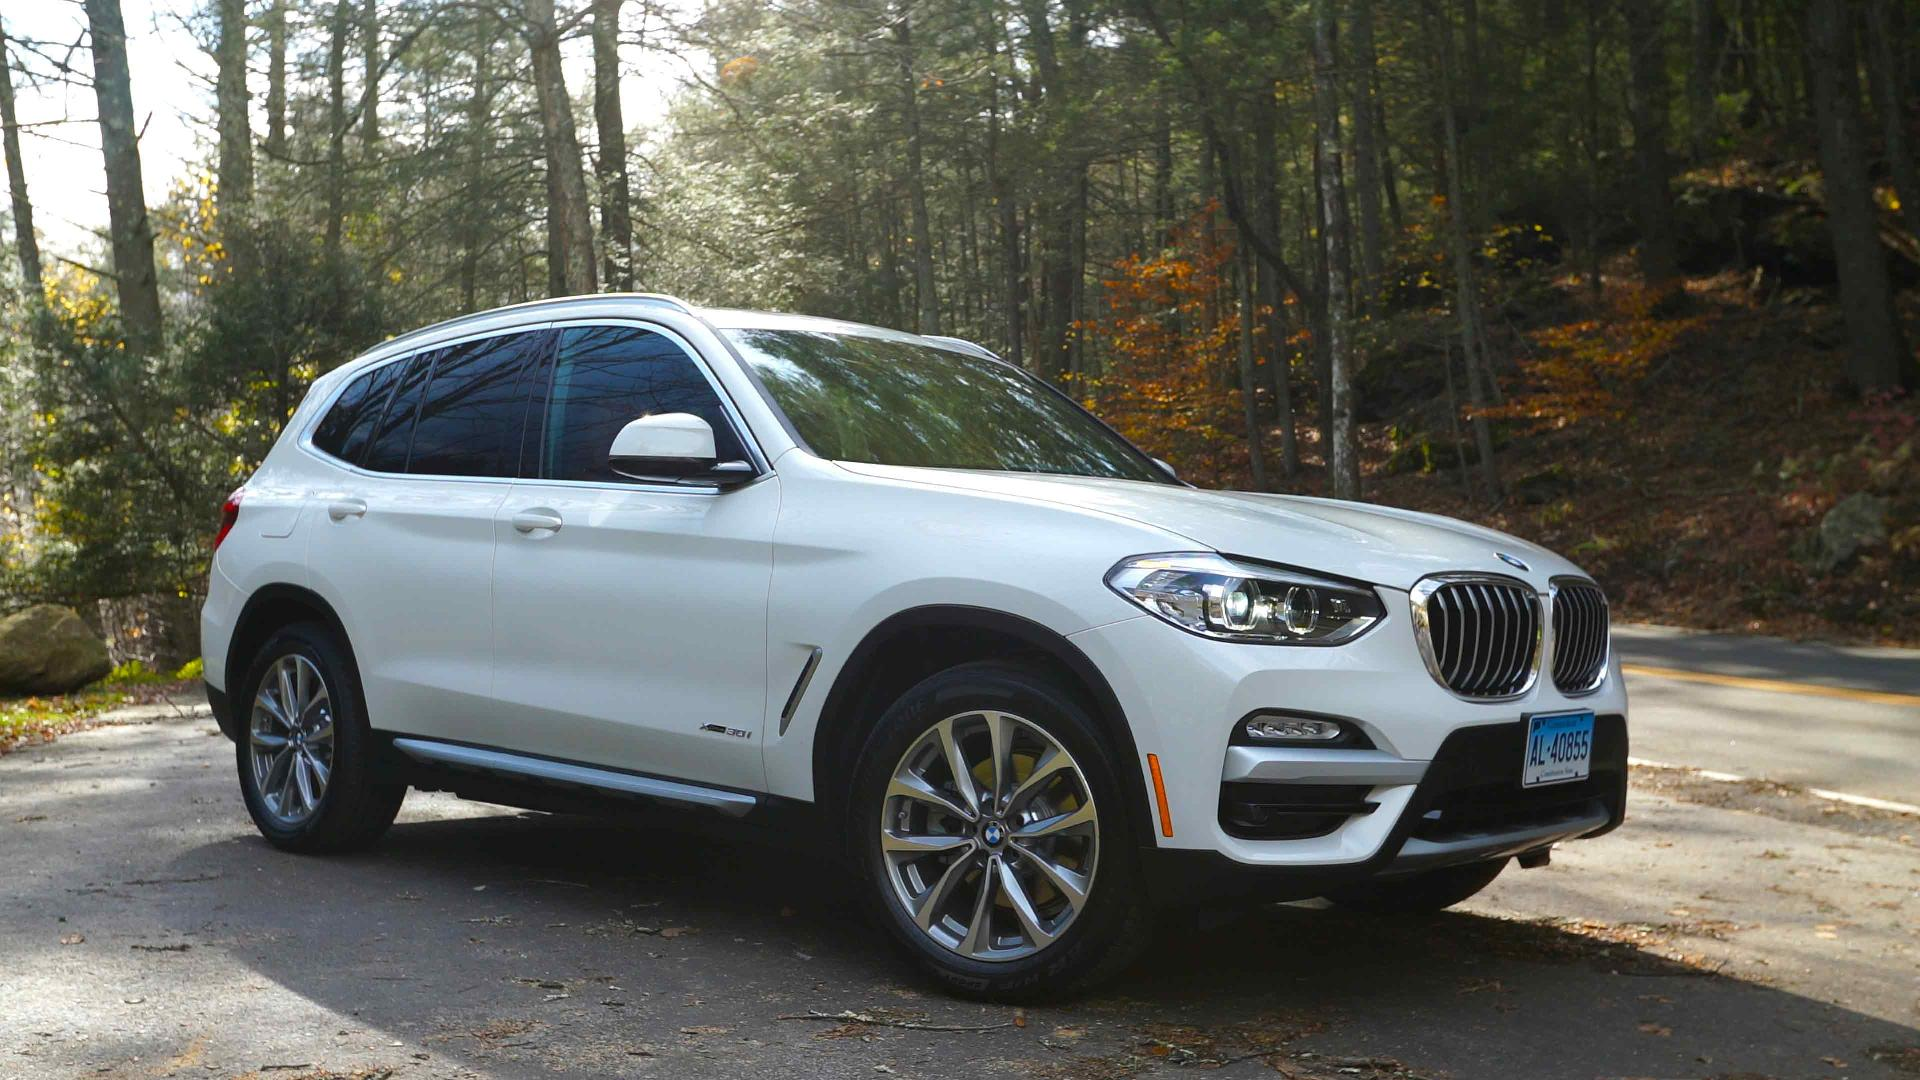 2018 BMW X3 May Be Among the Best Luxury Compact SUVs - Consumer Reports